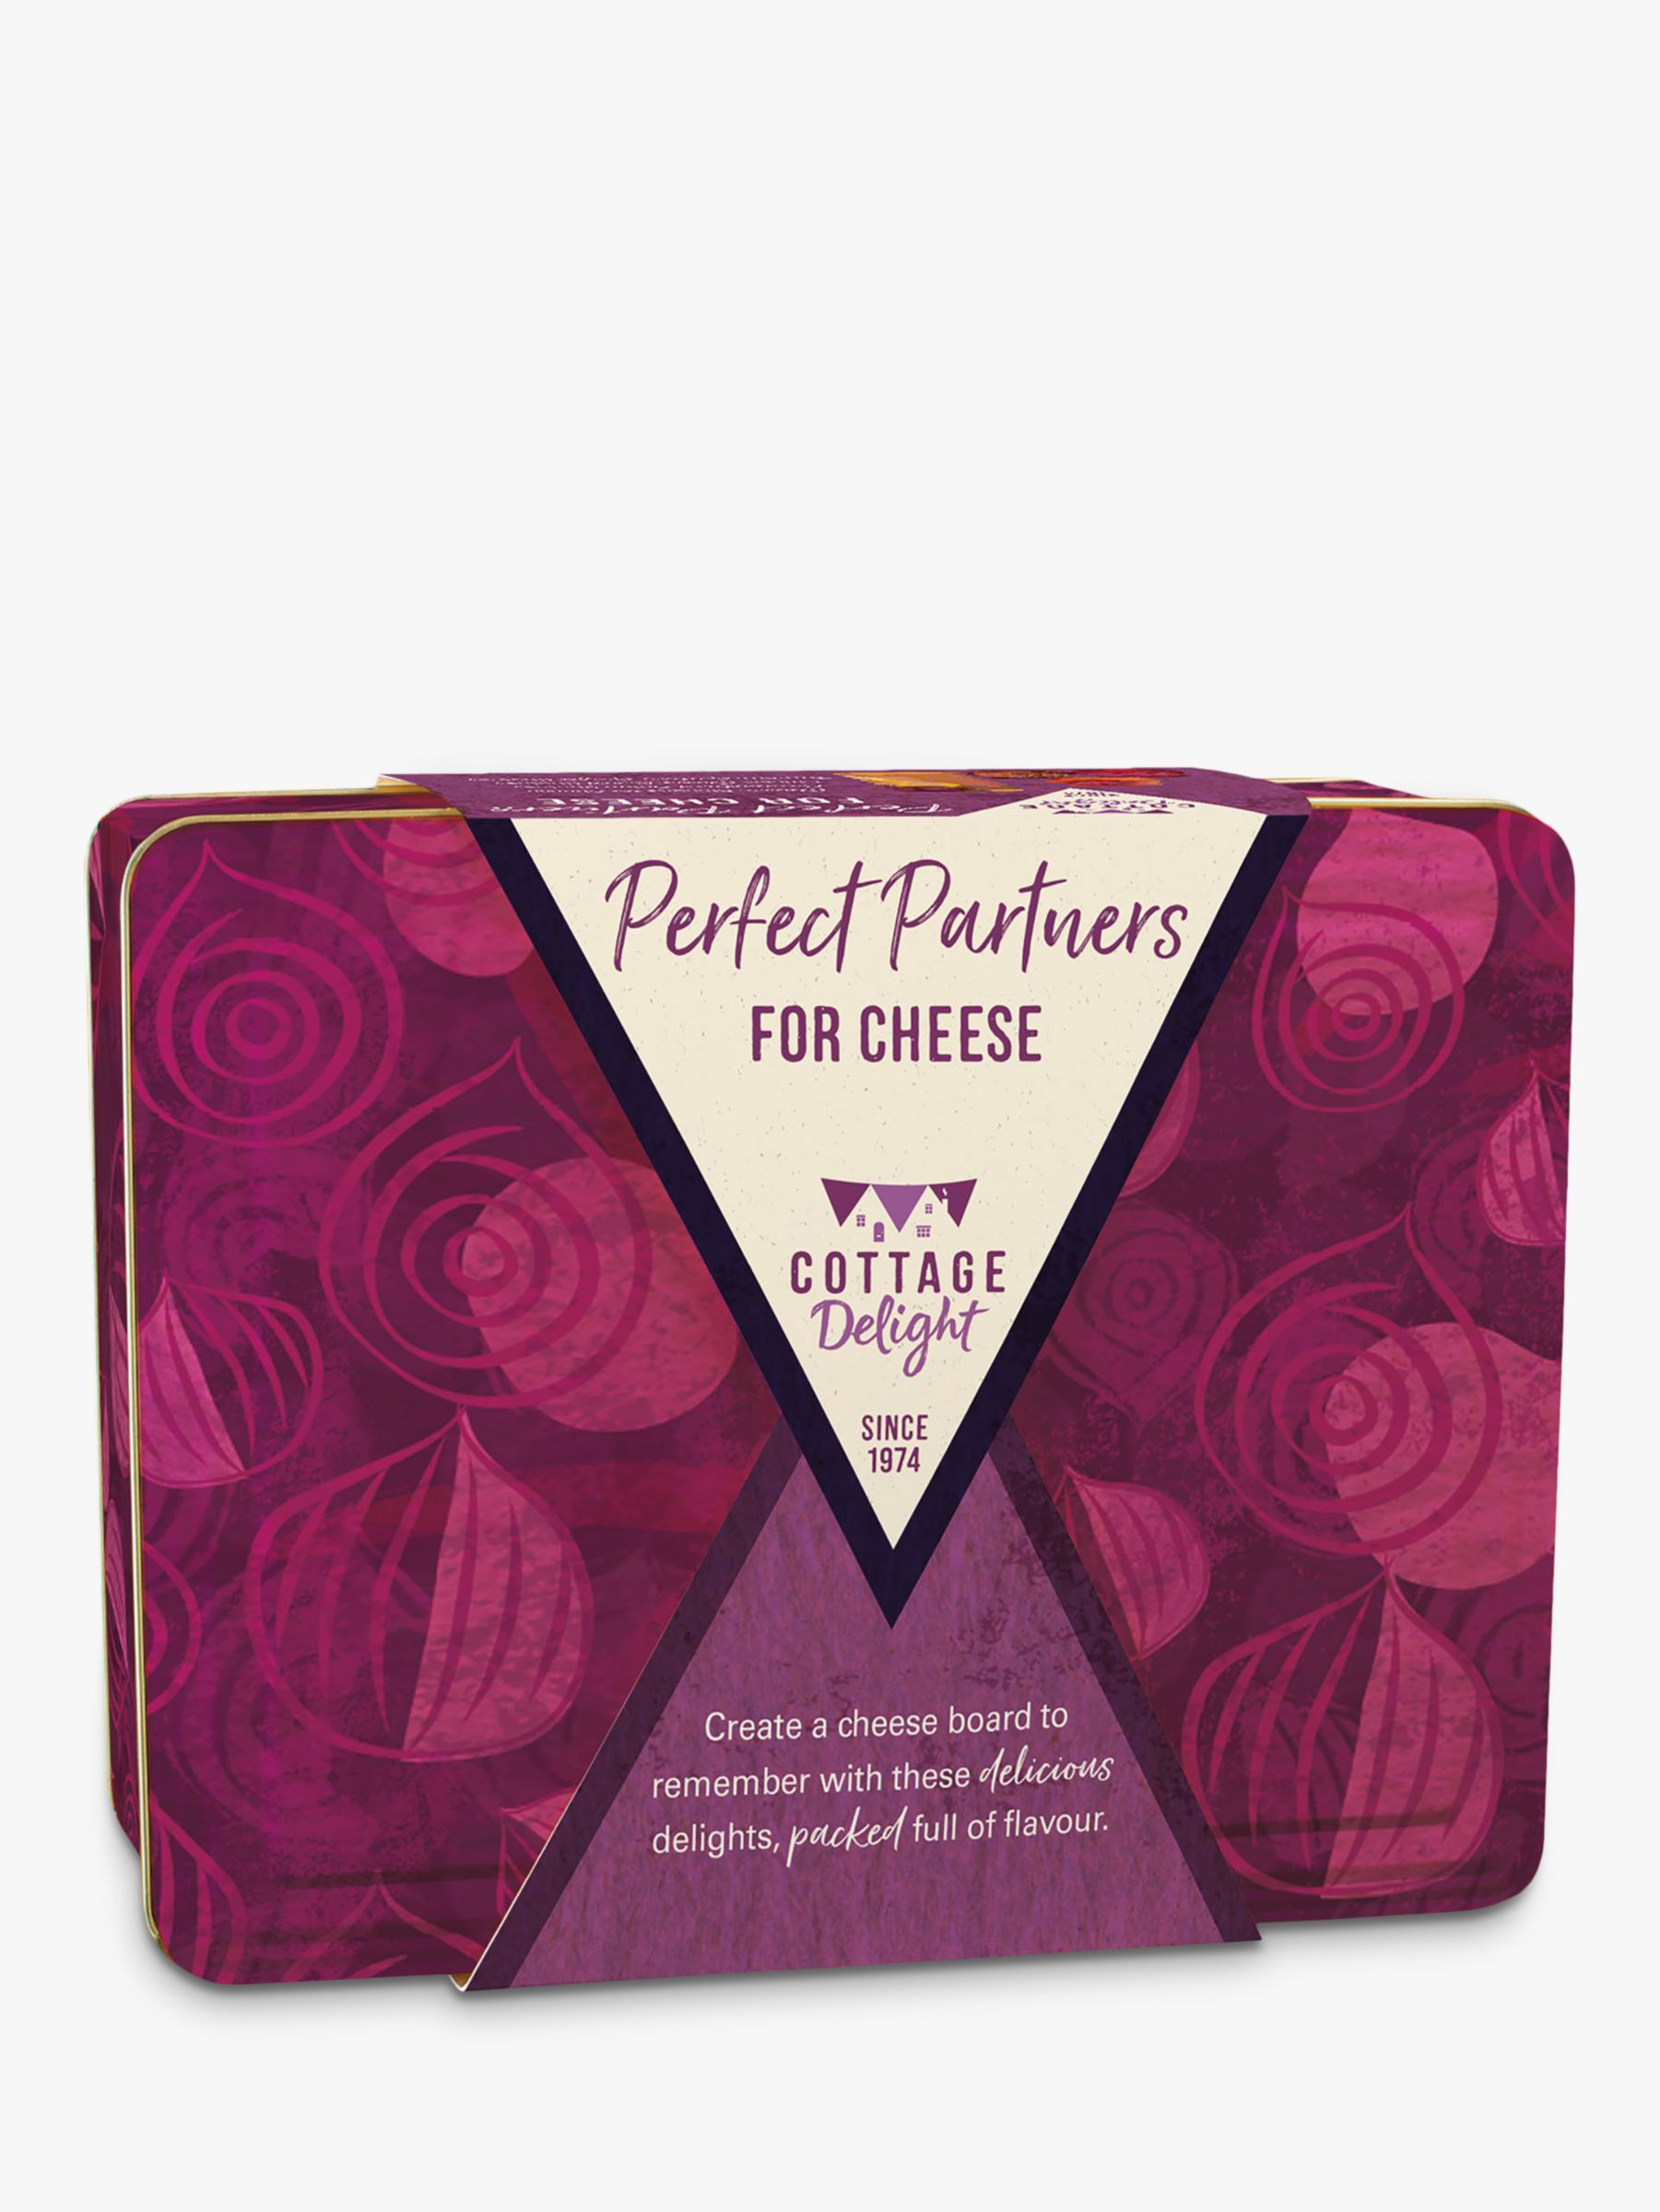 Cottage Delight Cottage Delight Perfect Partners for Cheese, 1kg